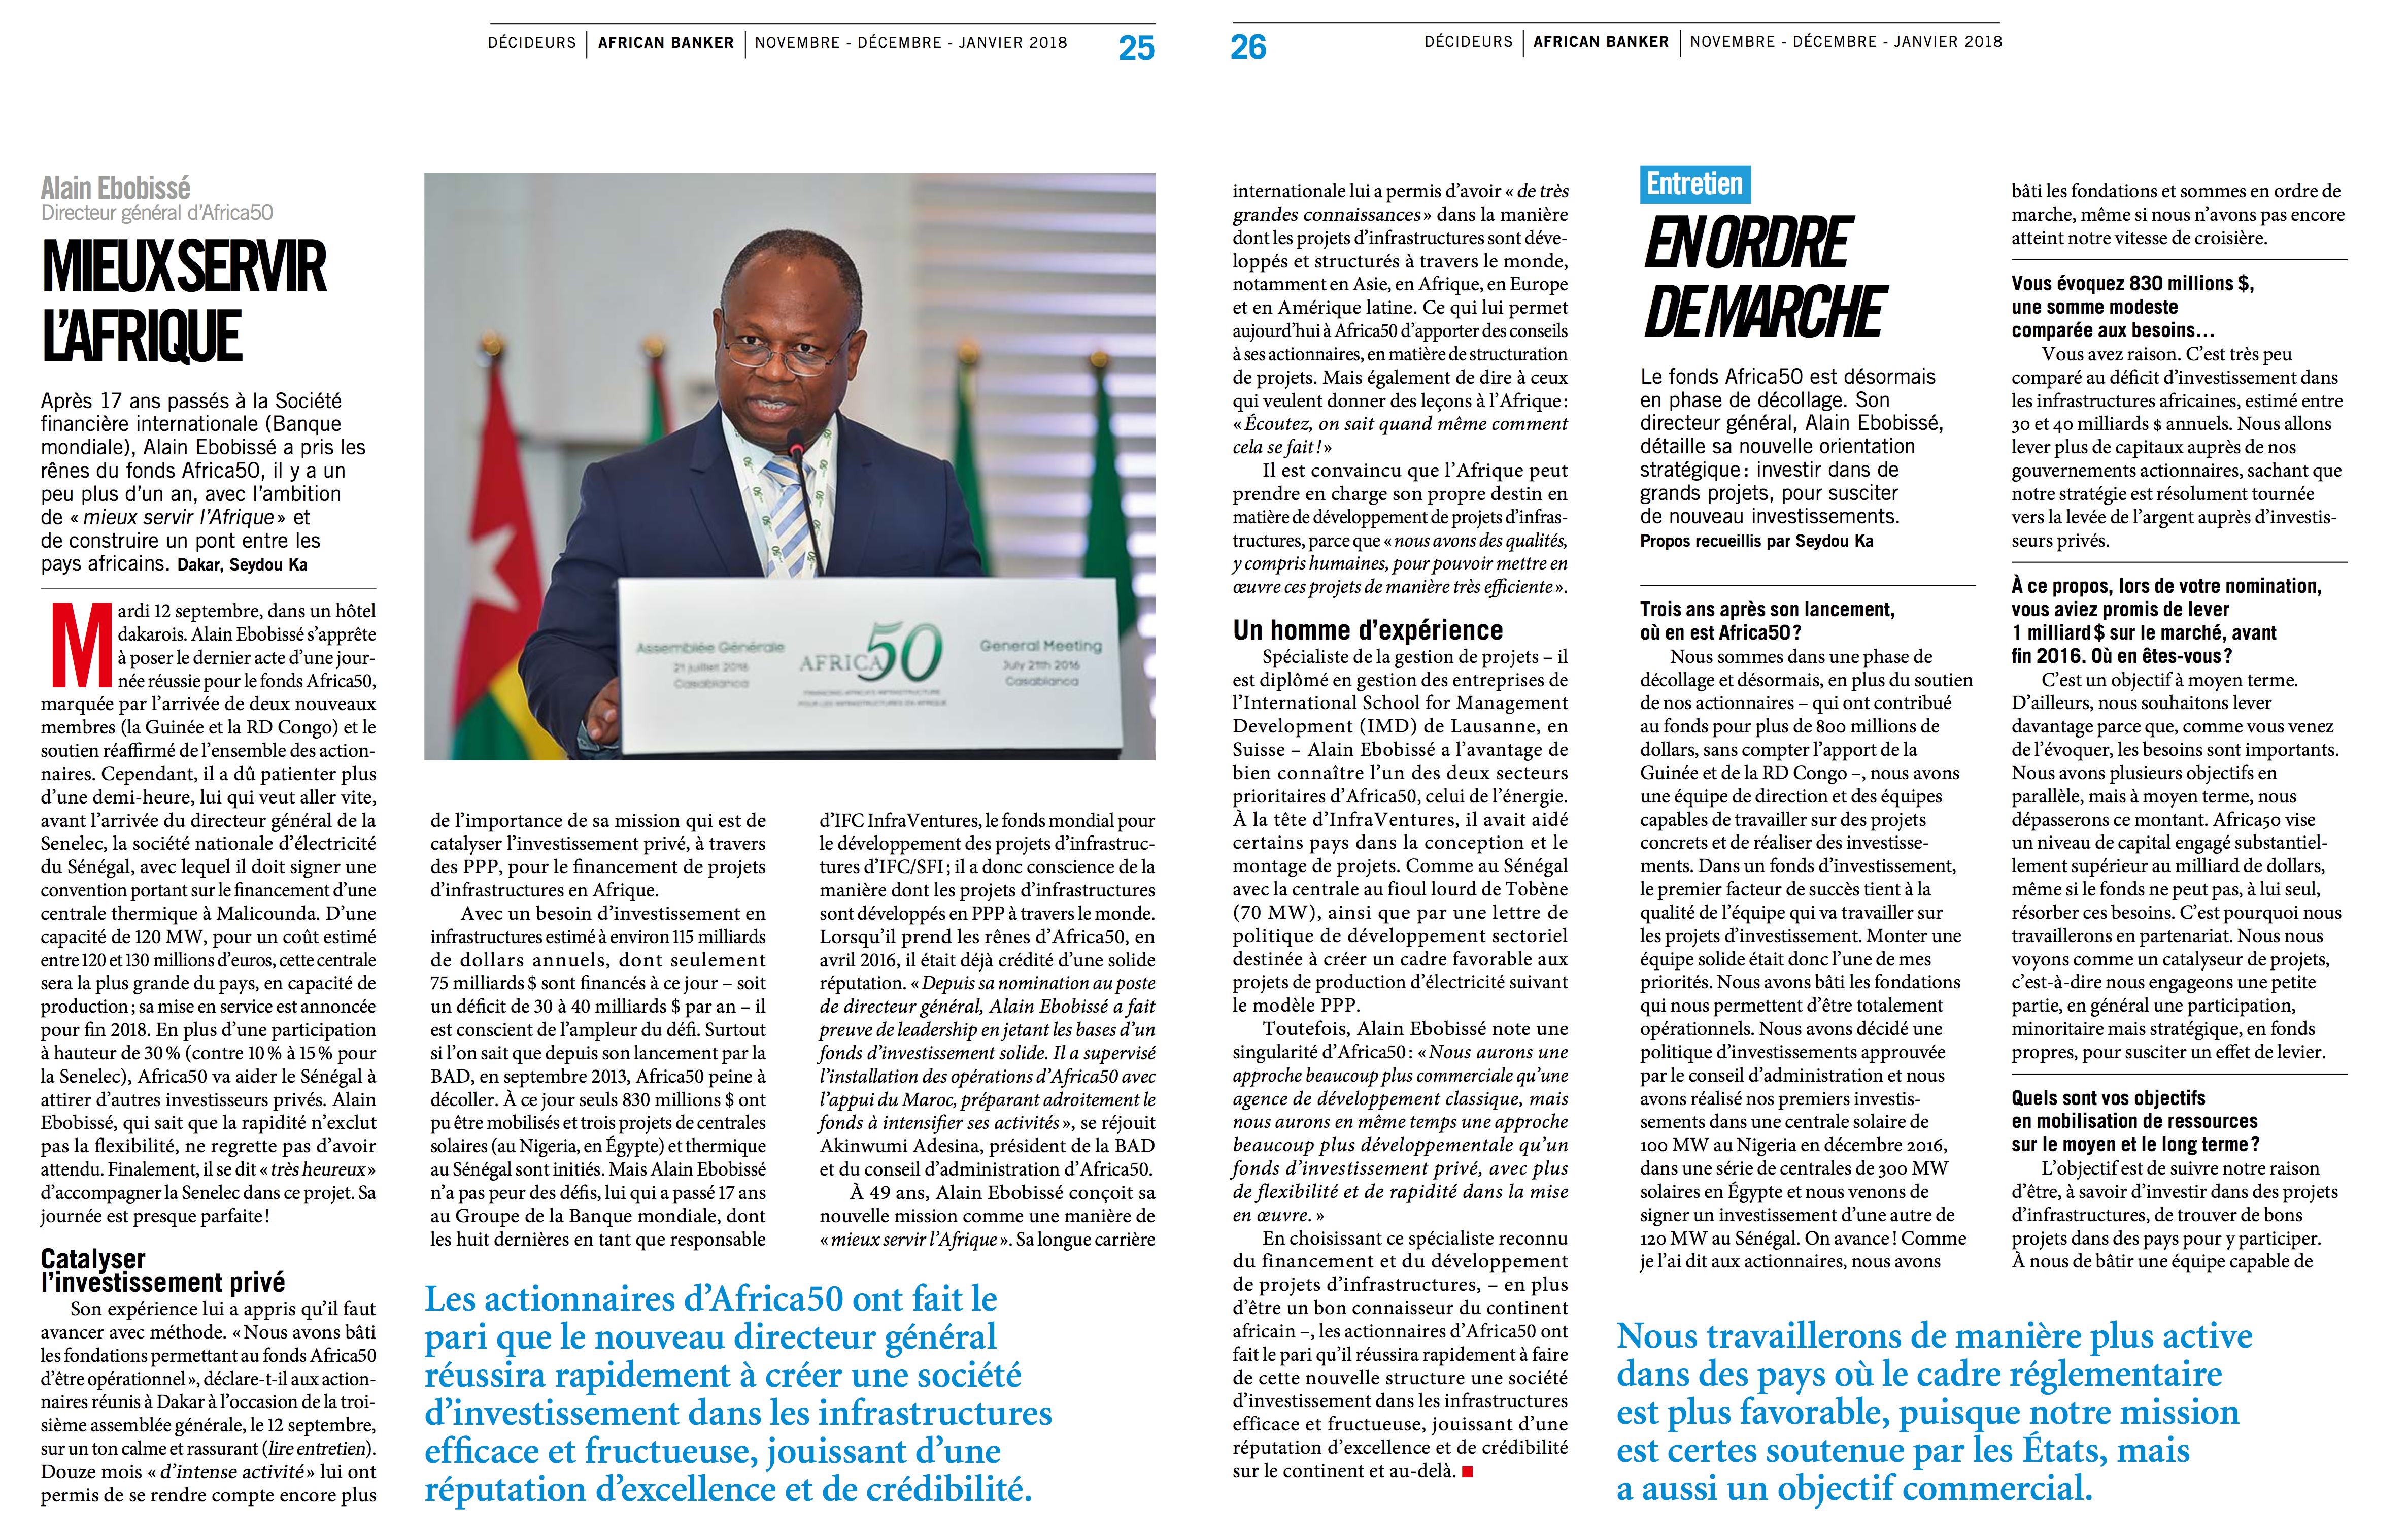 African Banker article